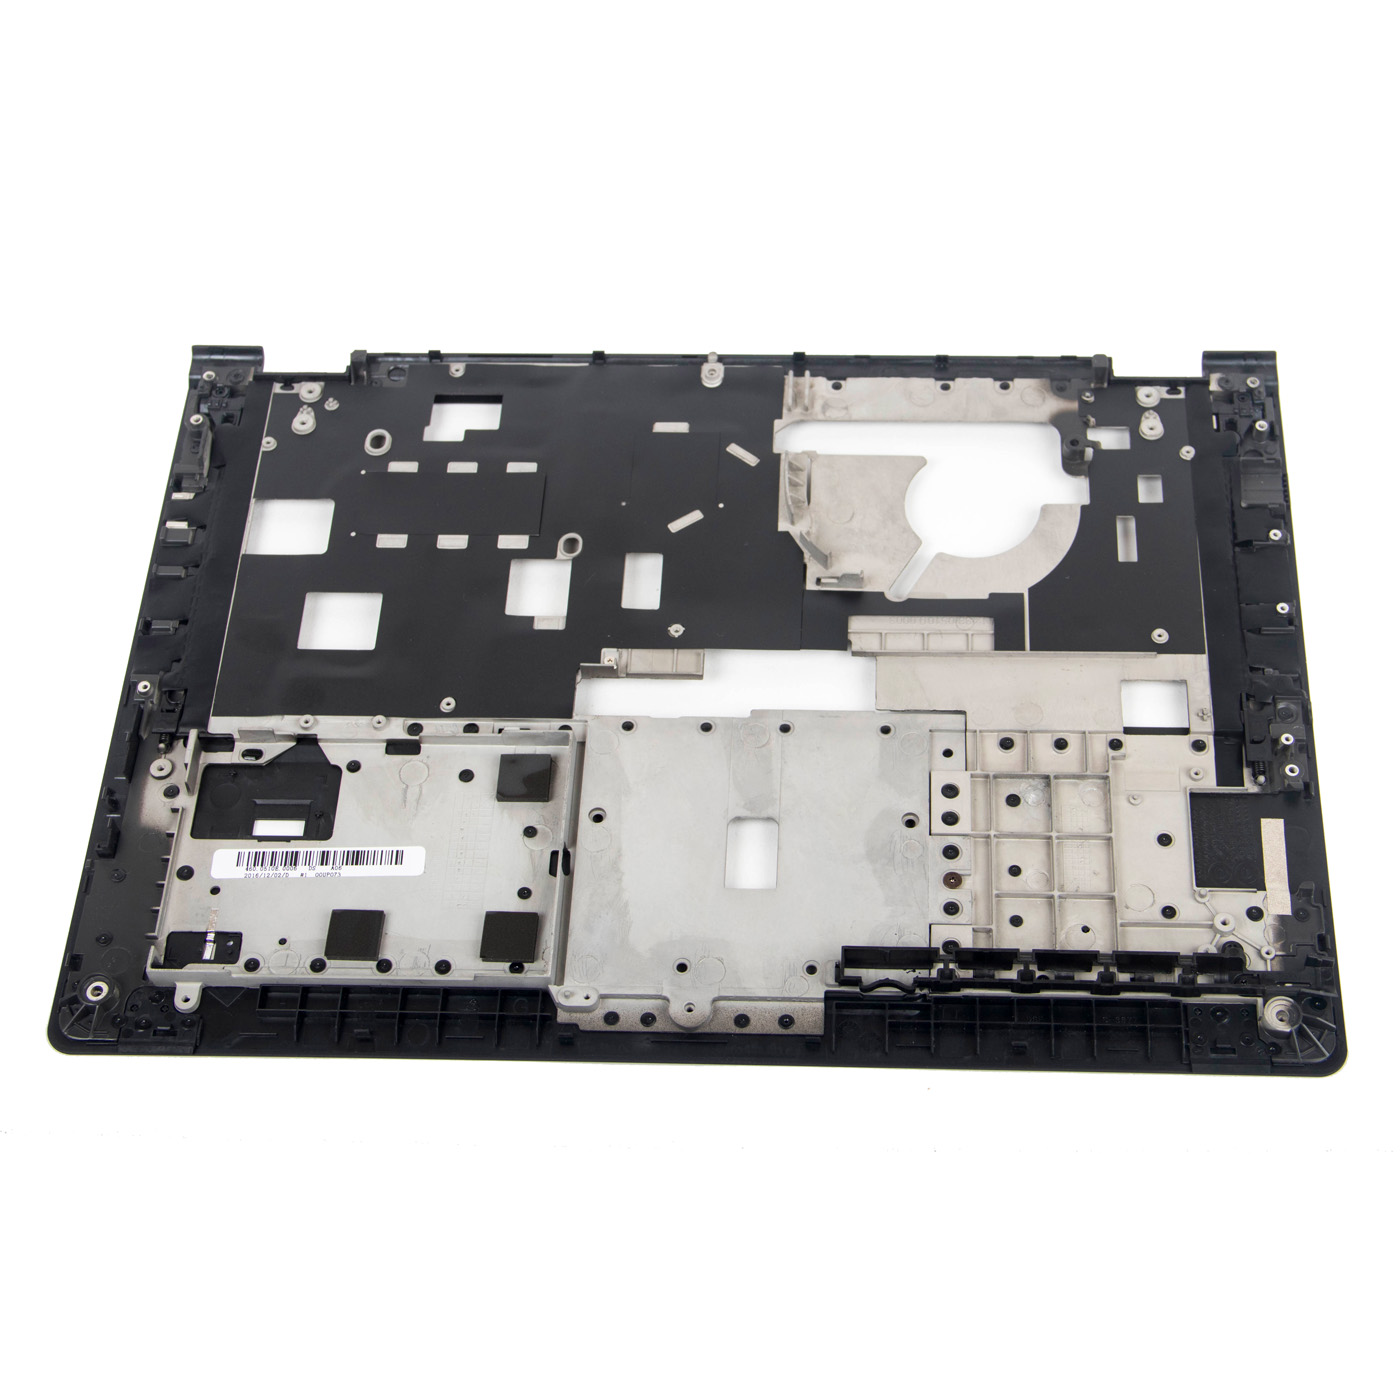 Palmrest Lenovo ThinkPad Yoga 14 P40 czytnik linii 00UP073